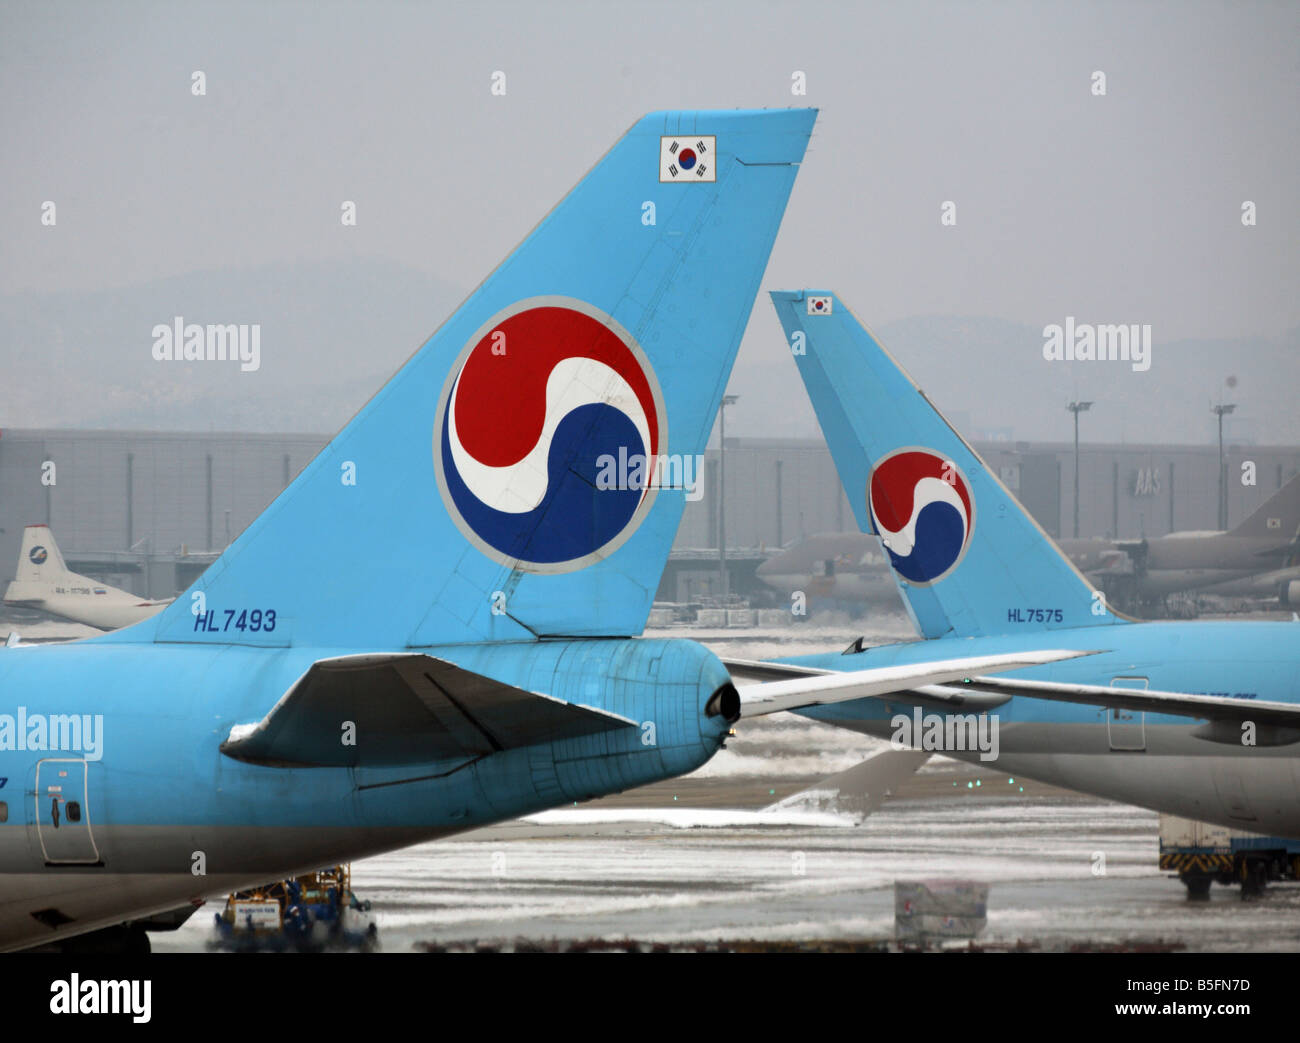 plane tails with logos of korean air airlines seoul